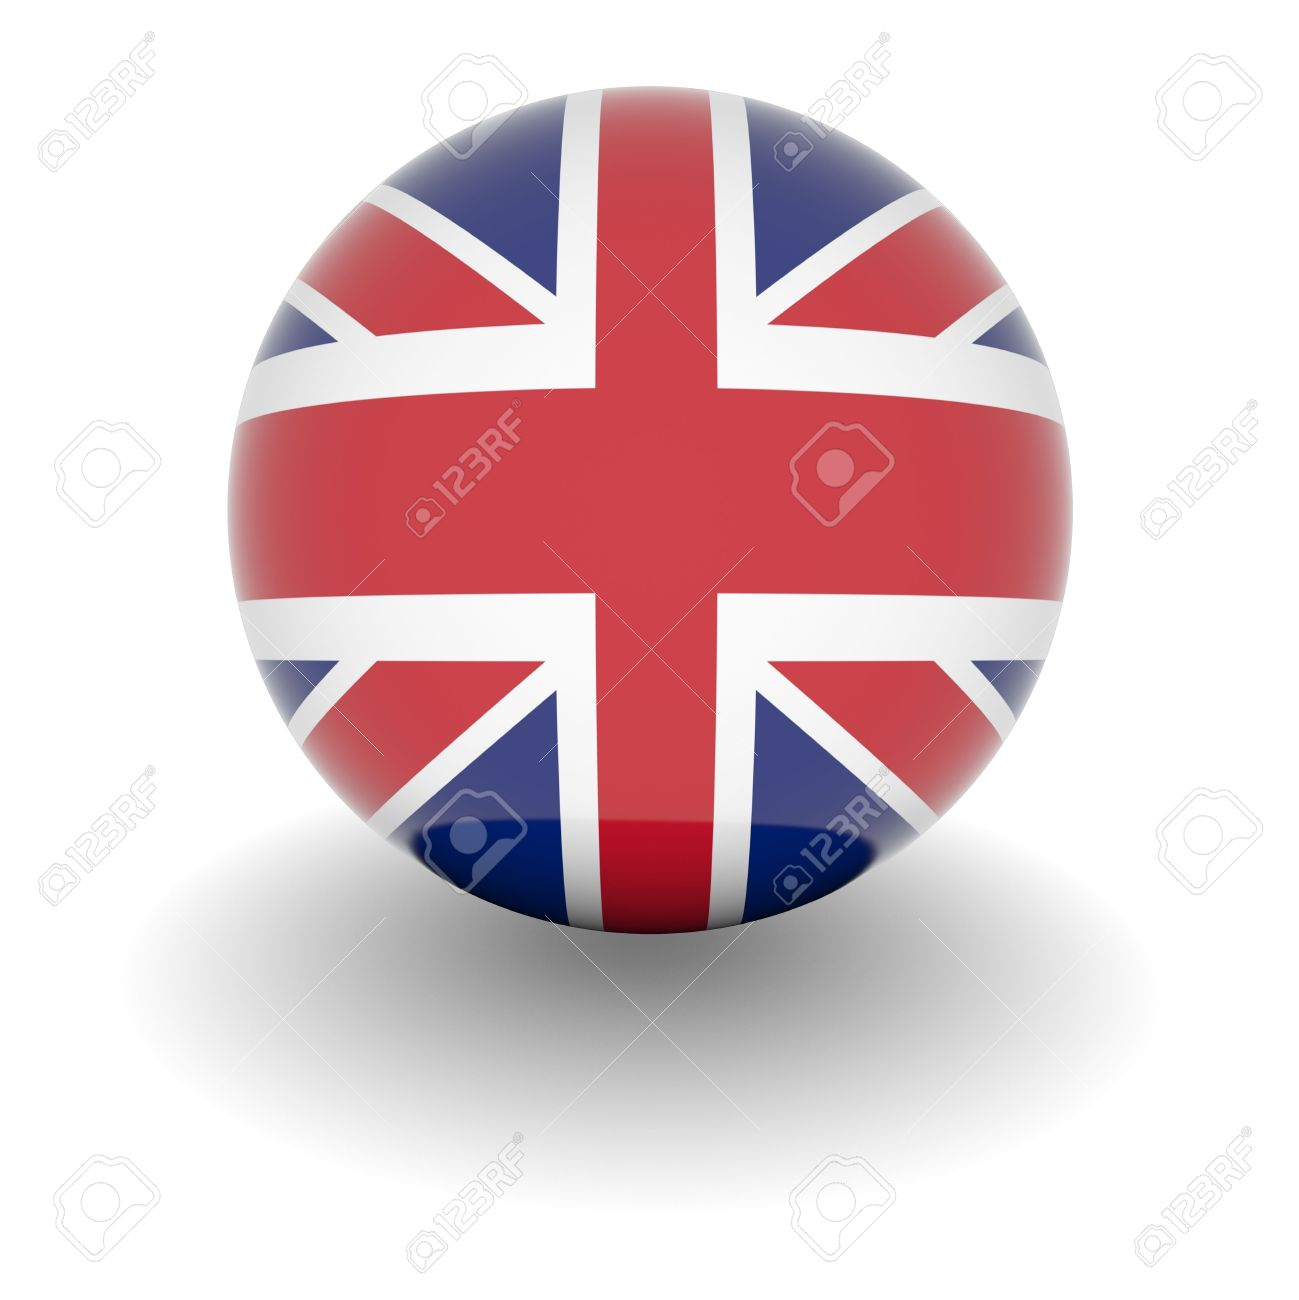 3D Ball with Flag of the United Kingdom. High resolution 3d render isolated on white. Stock Photo - 5376532